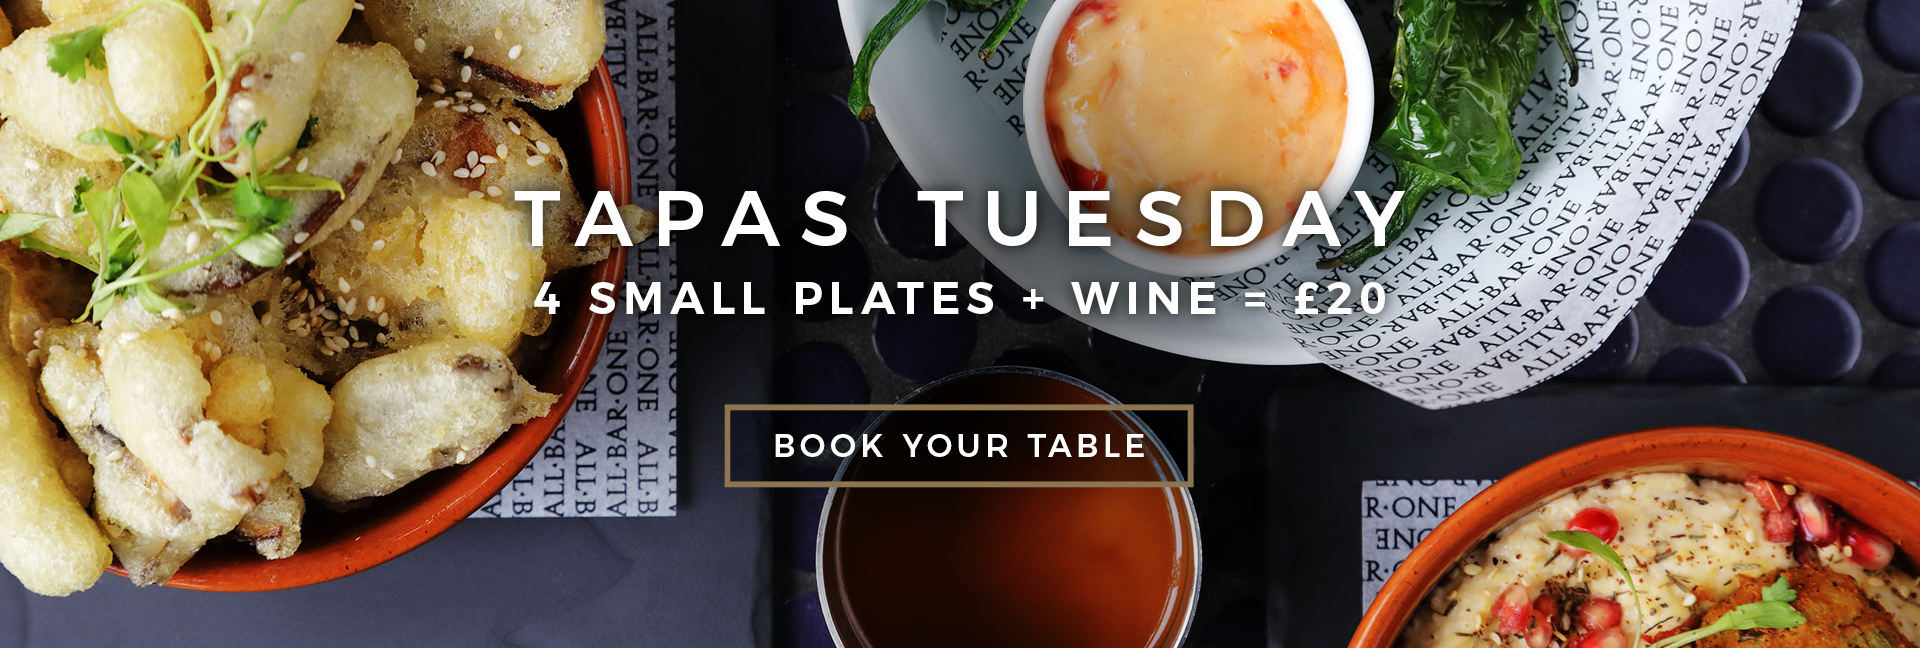 Tapas Tuesday at All Bar One Portsmouth - Book now